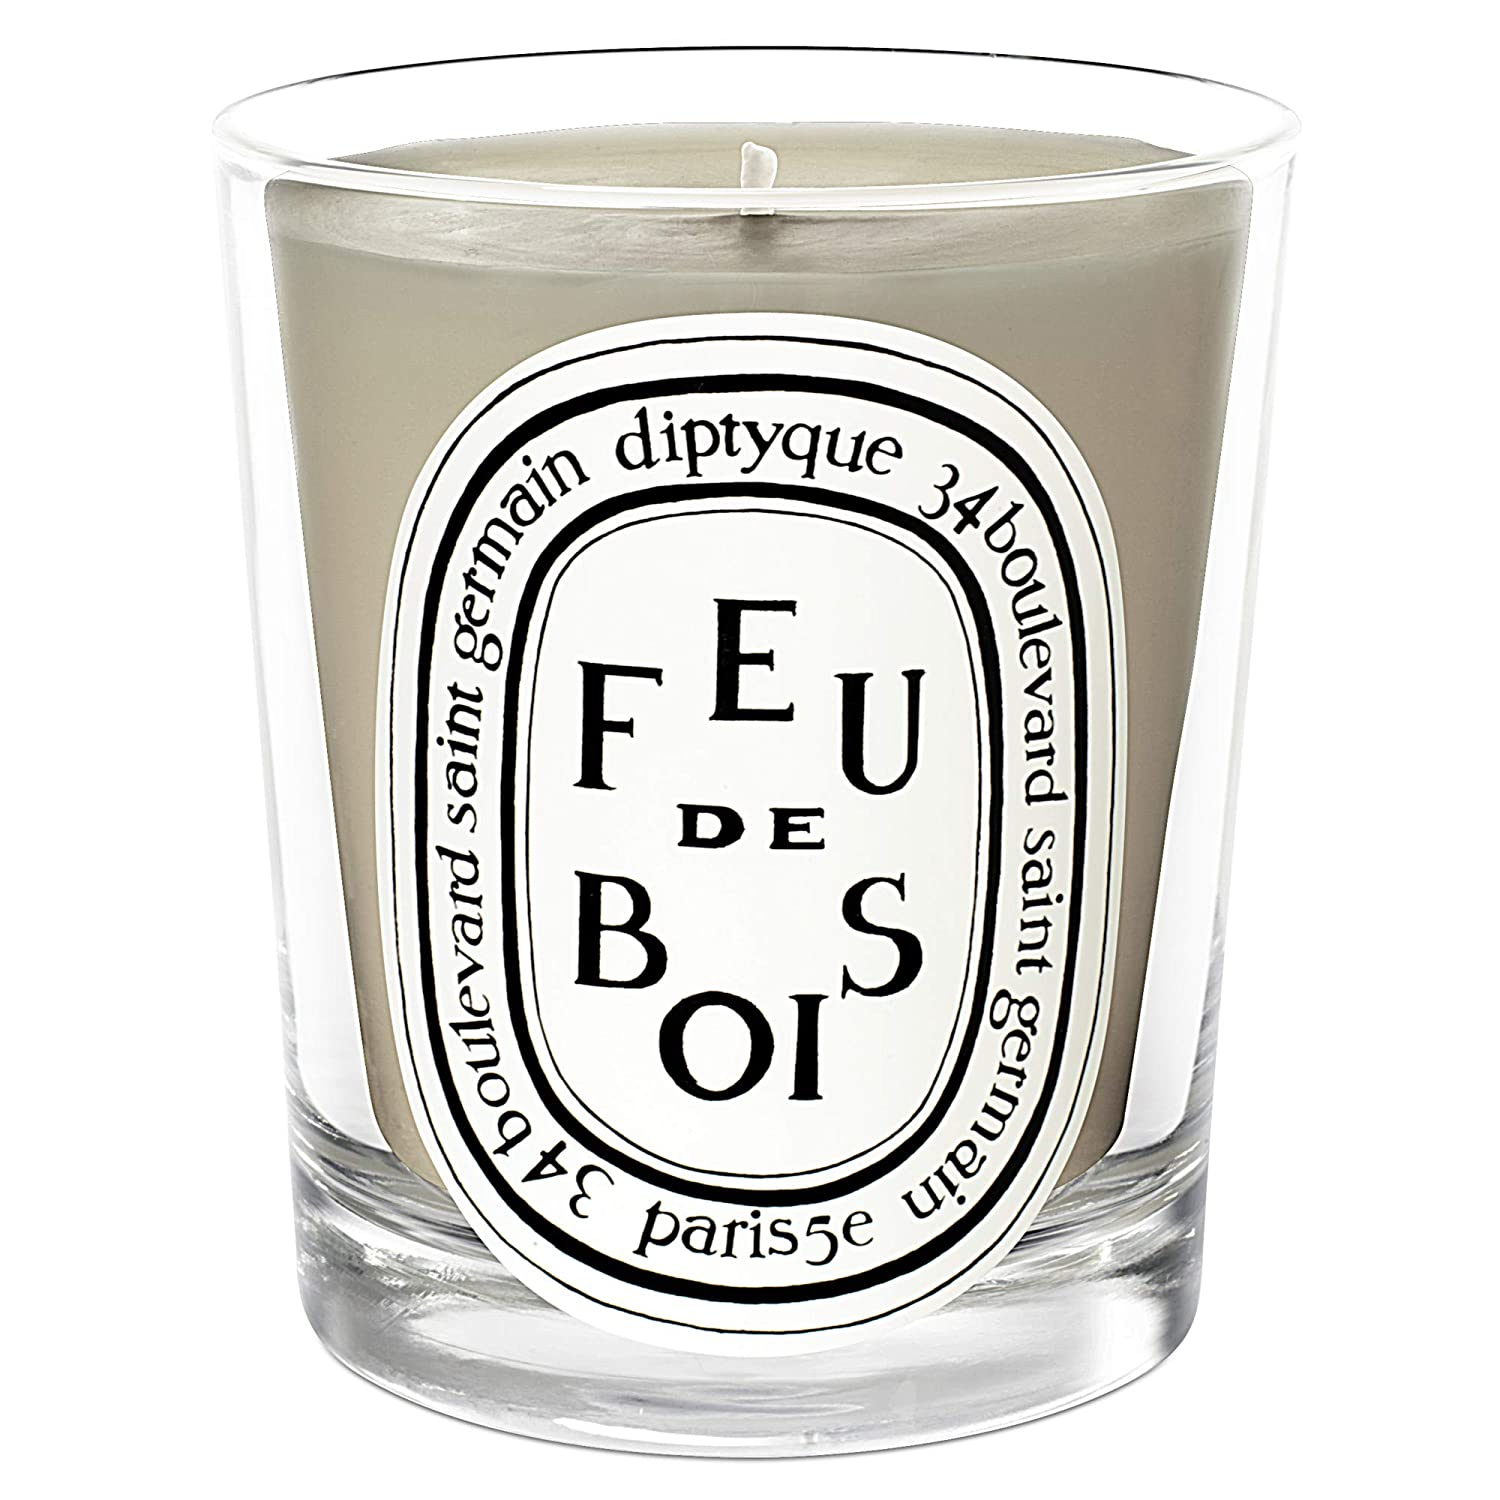 [Diptyque] DiptyqueのFeuドボワ香りのキャンドル190グラム - Diptyque Feu de Bois Scented Candle 190g [並行輸入品] B07S859B92